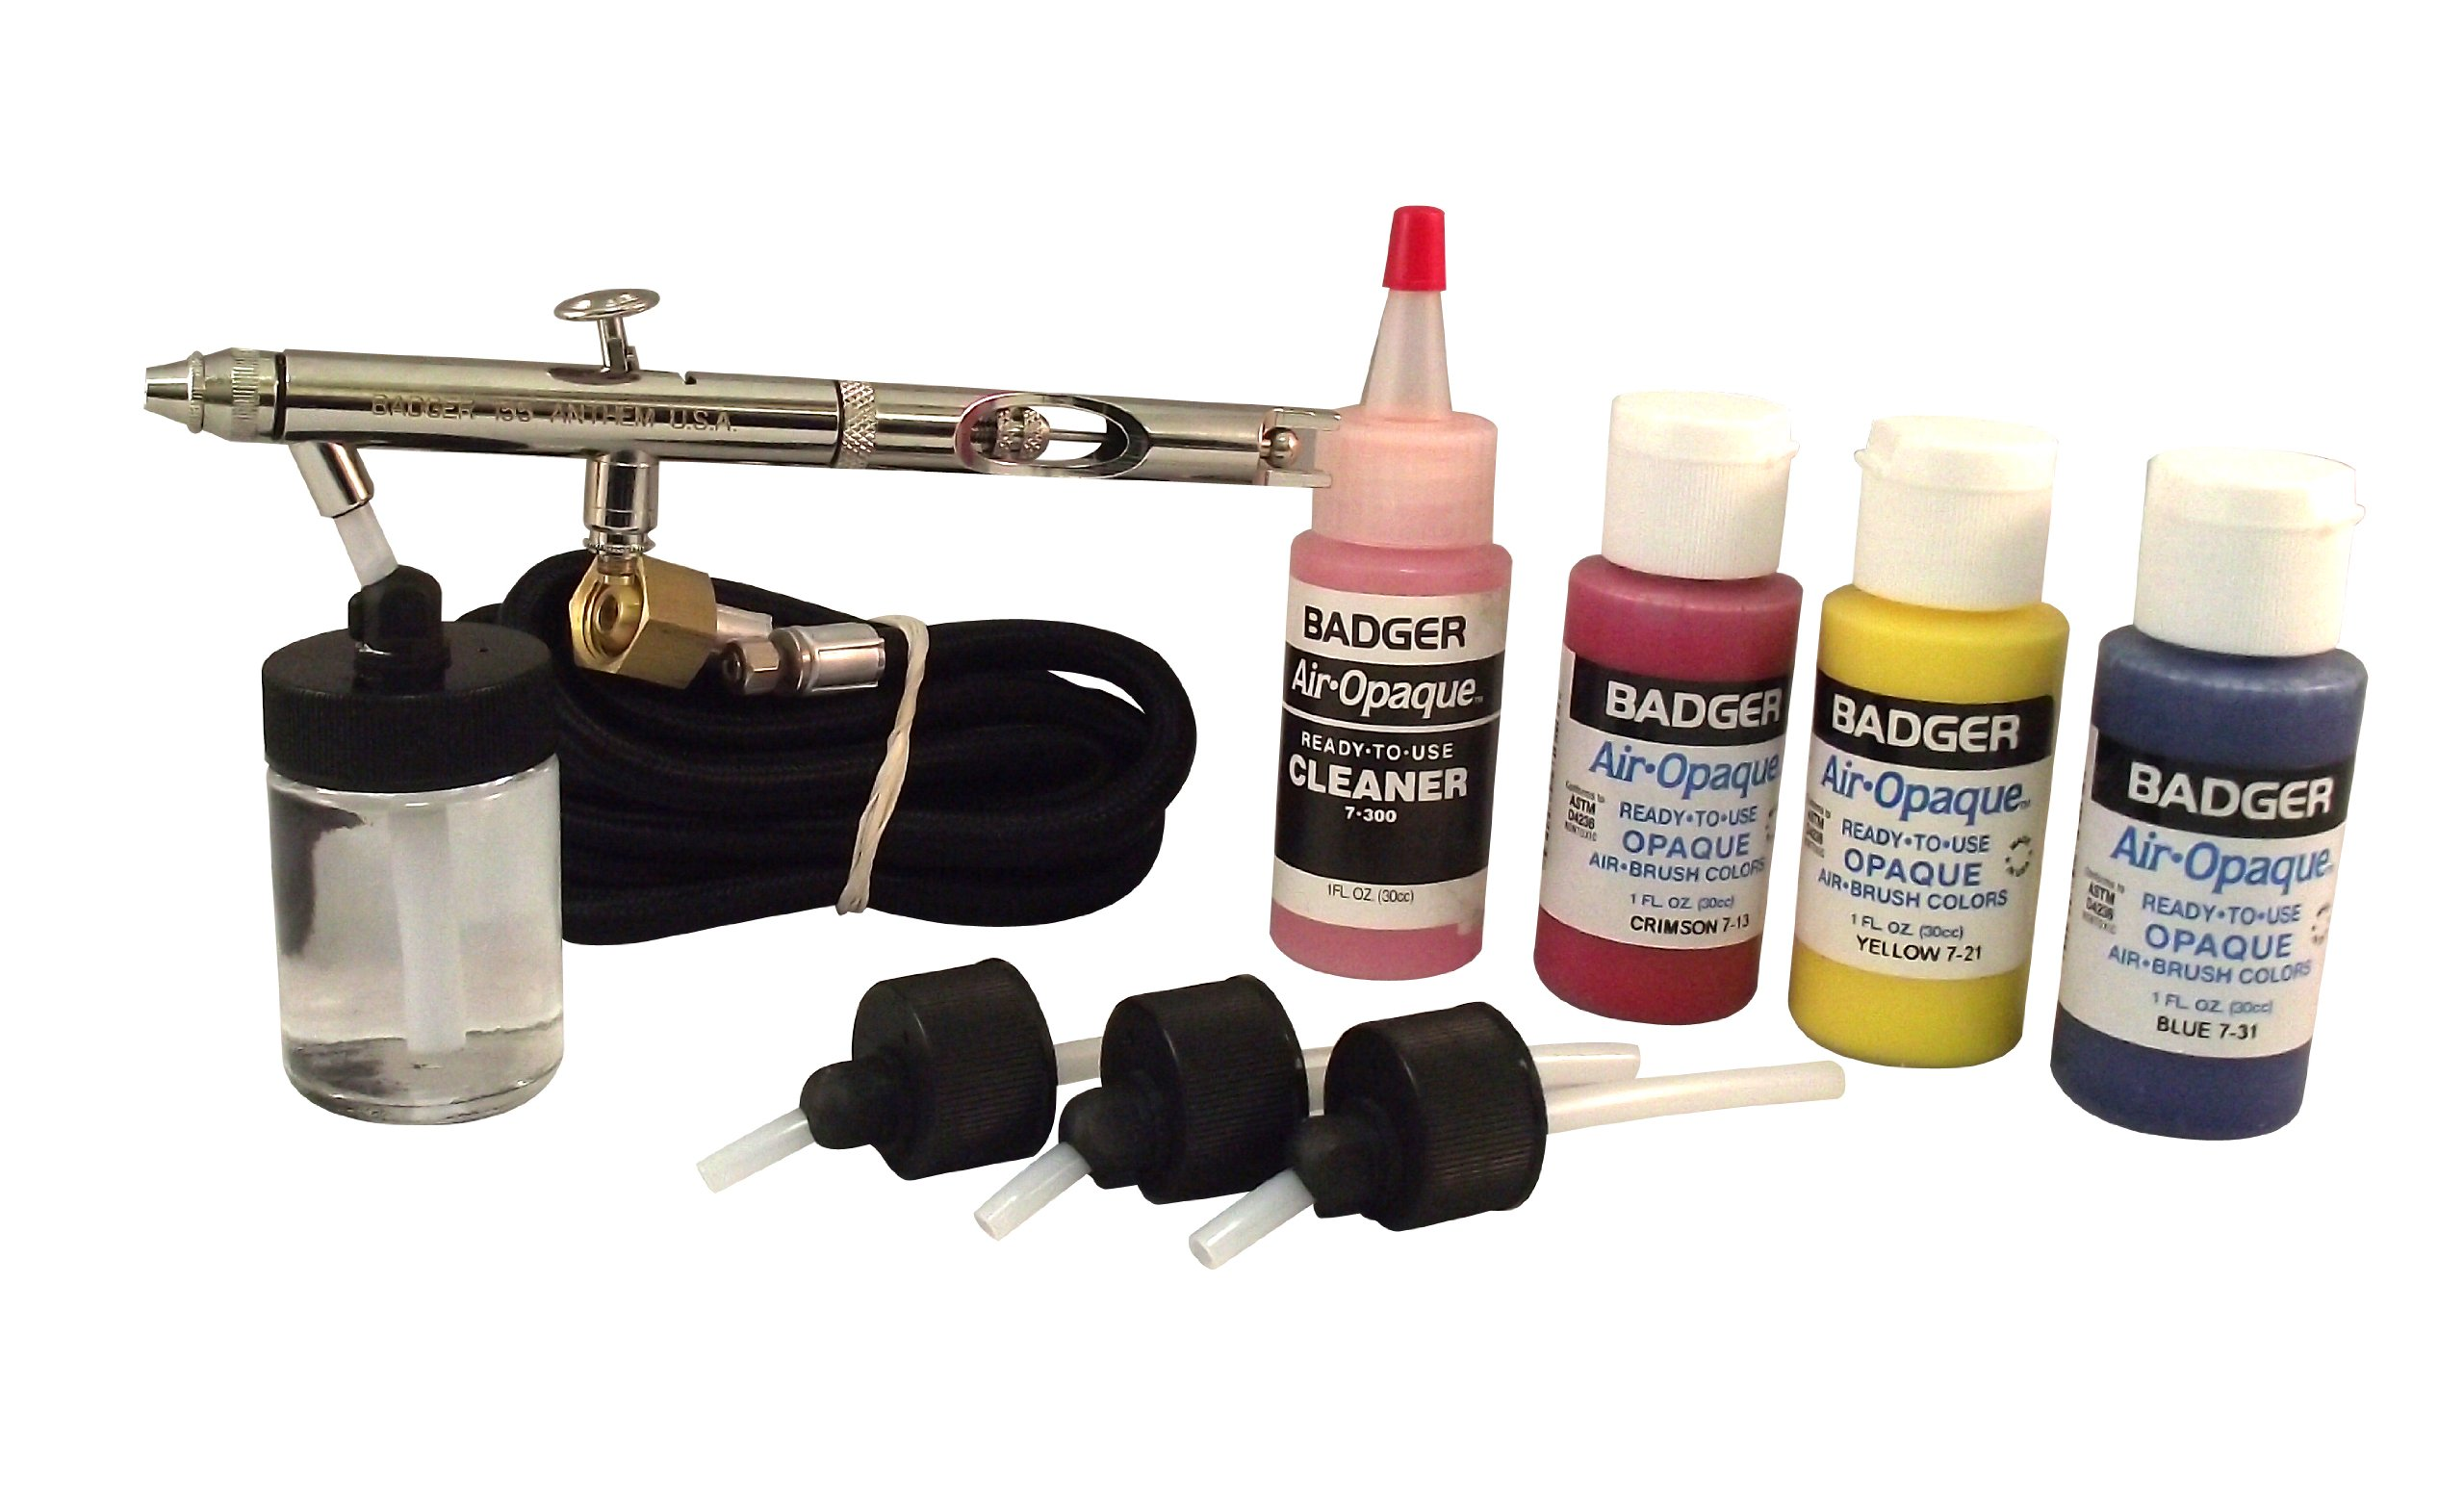 Badger Air-Brush Co. 155-17 Special Edition Airbrush Set